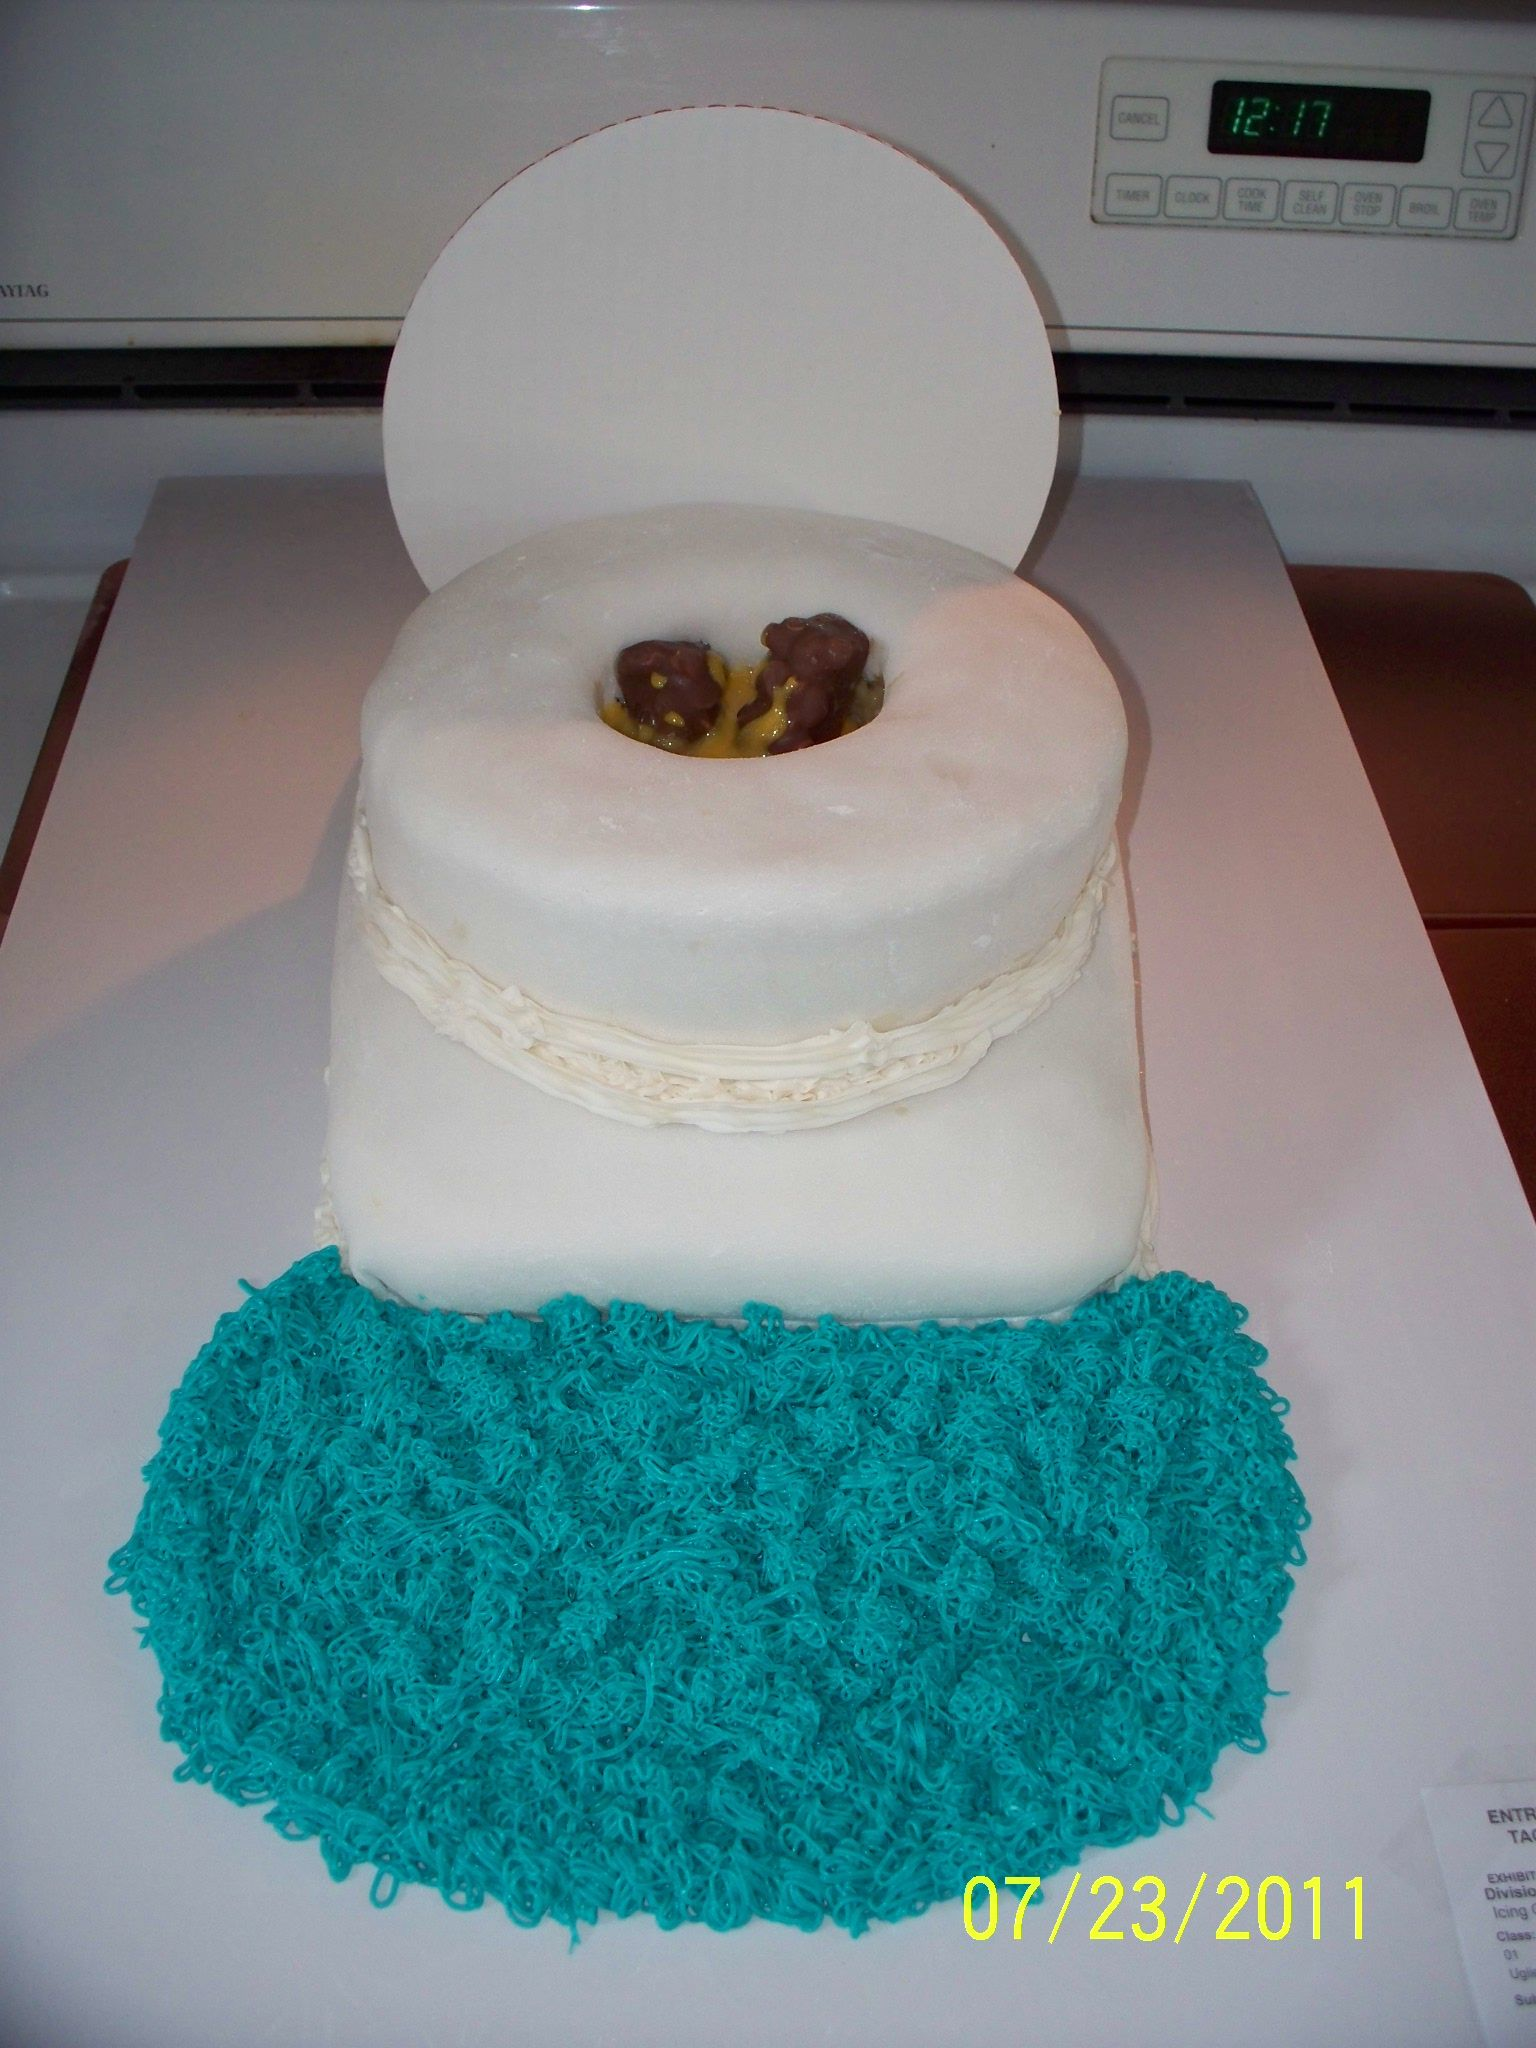 Cake Images Of Toilet : Heathers Cake Toilet Cake Ideas and Designs